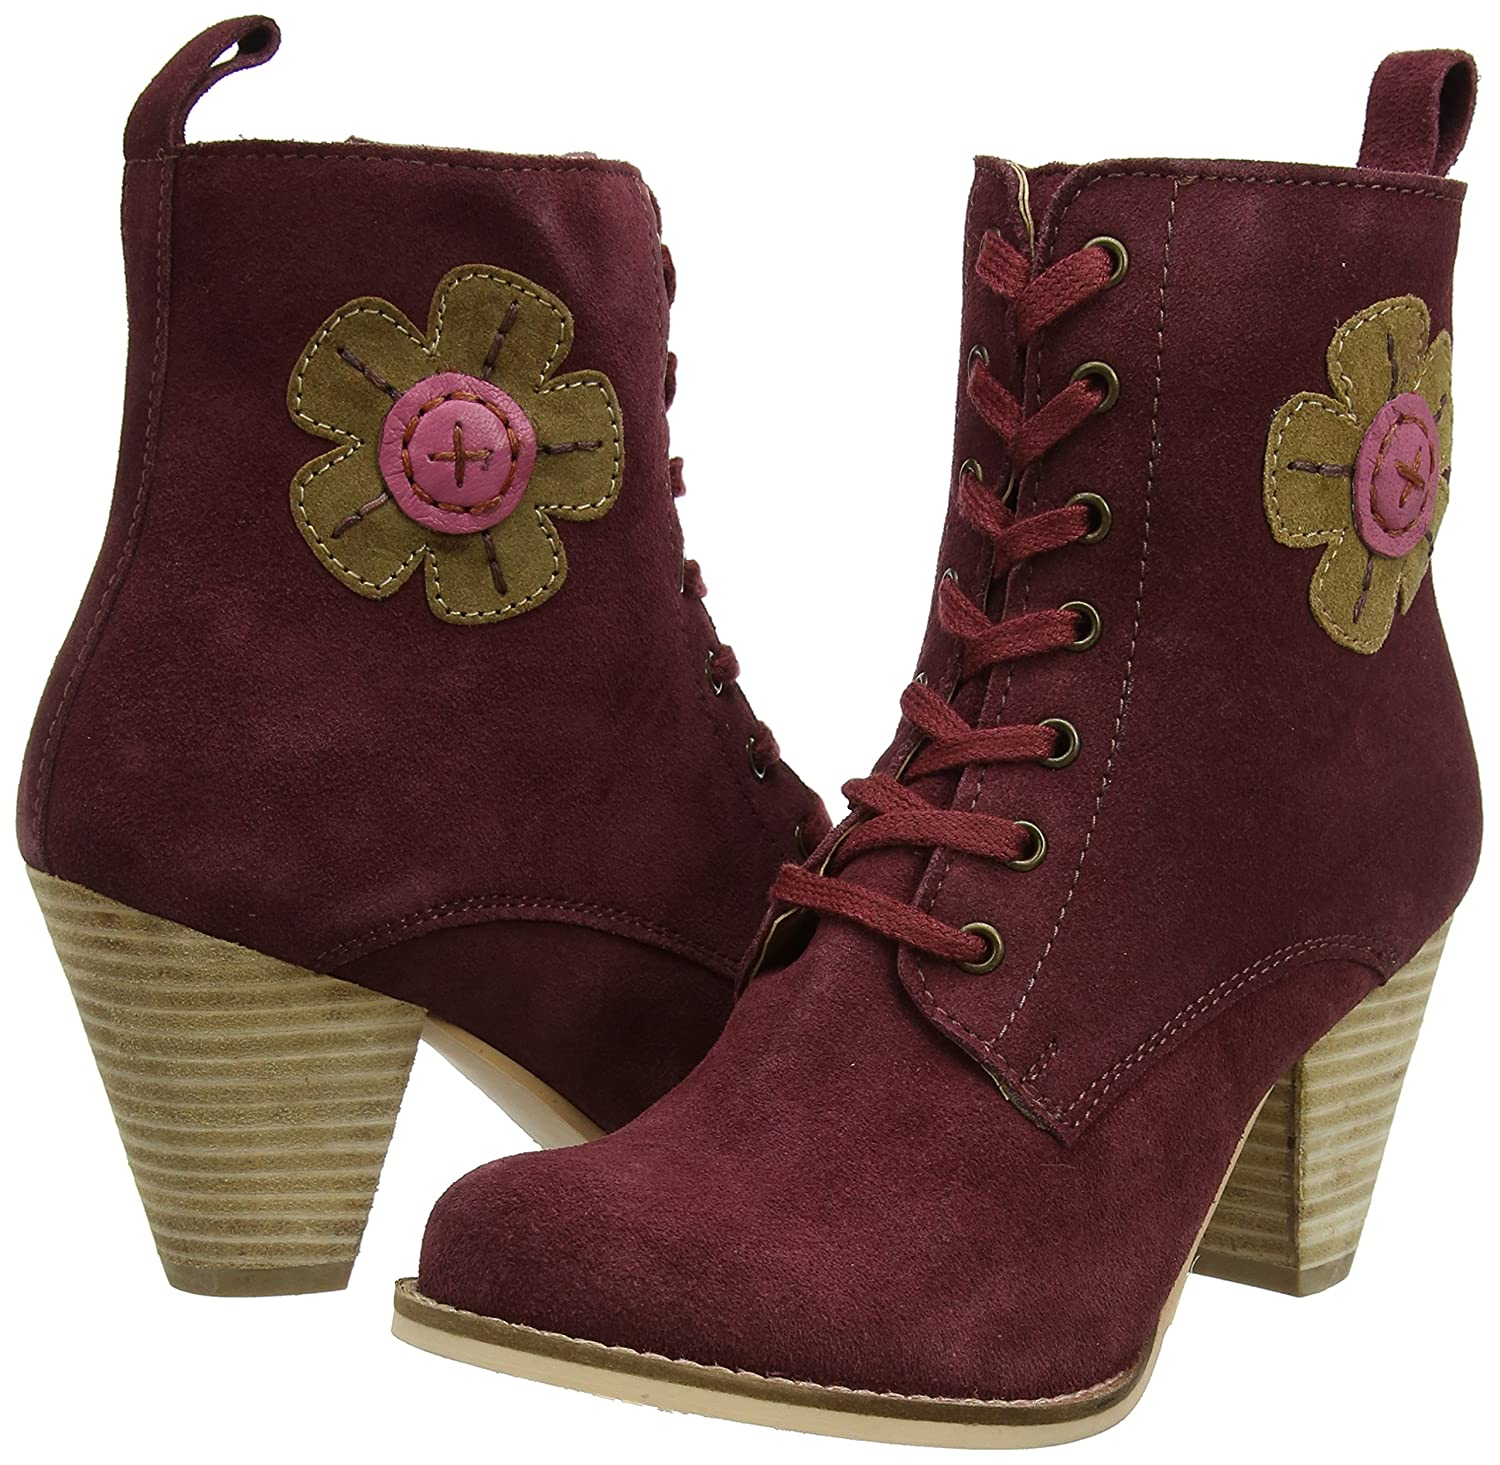 Suede Browns Reitstiefel Quirky Joe And Boots Damen Cute sdCxtrhQ